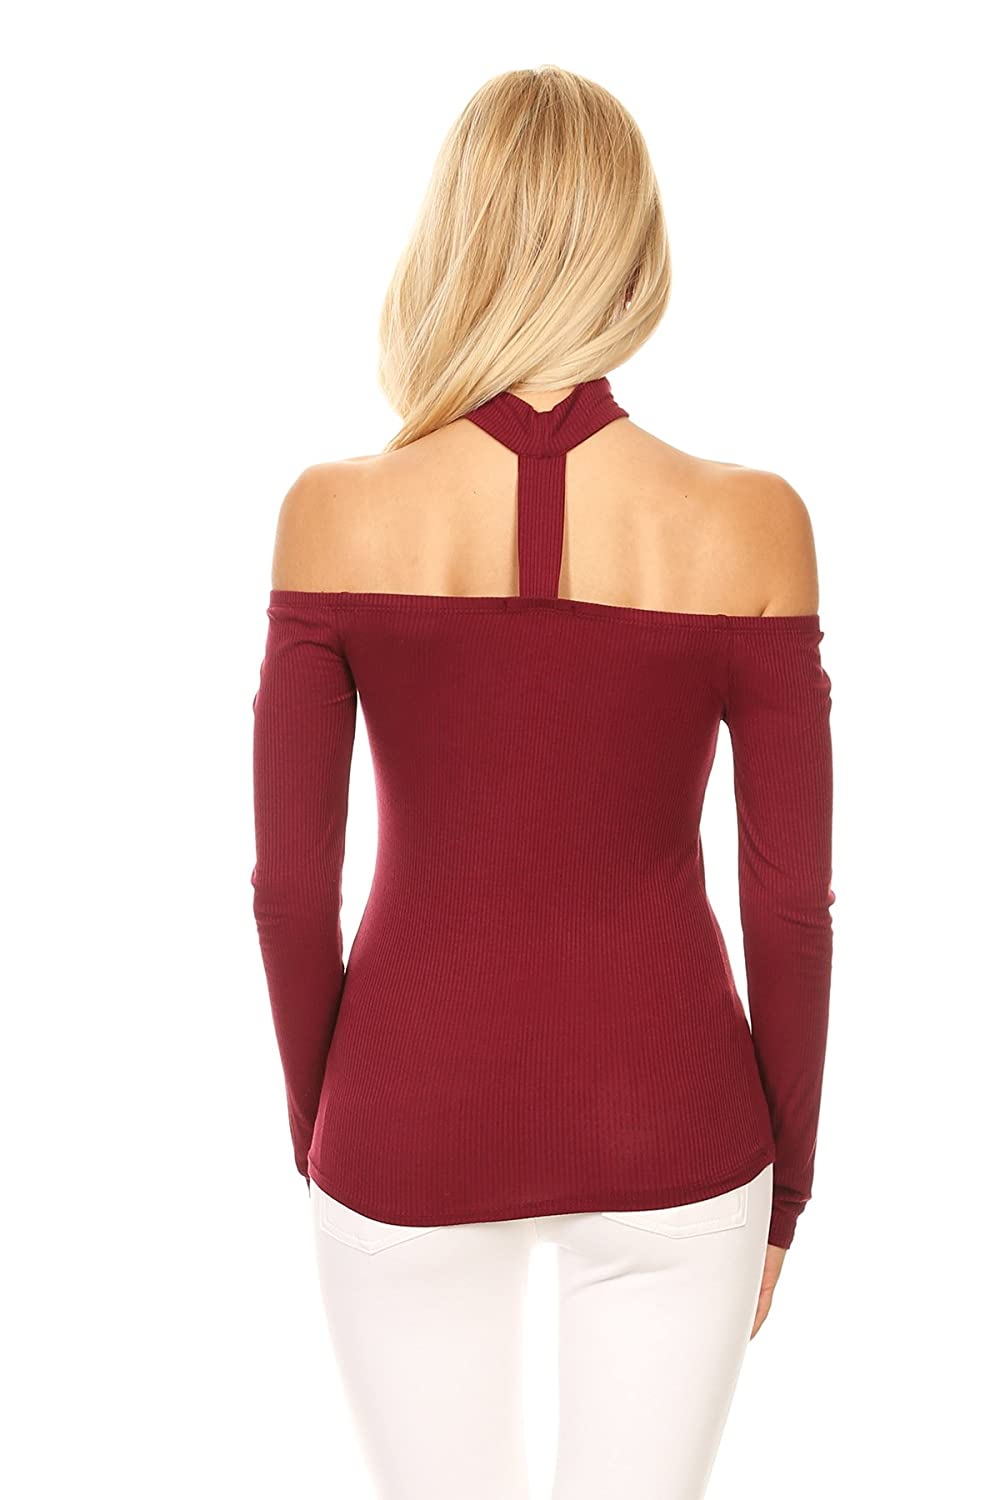 5a6ca7891d491 Ambiance Women s Off Shoulder Stretchy Long Sleeve Top at Amazon Women s  Clothing store